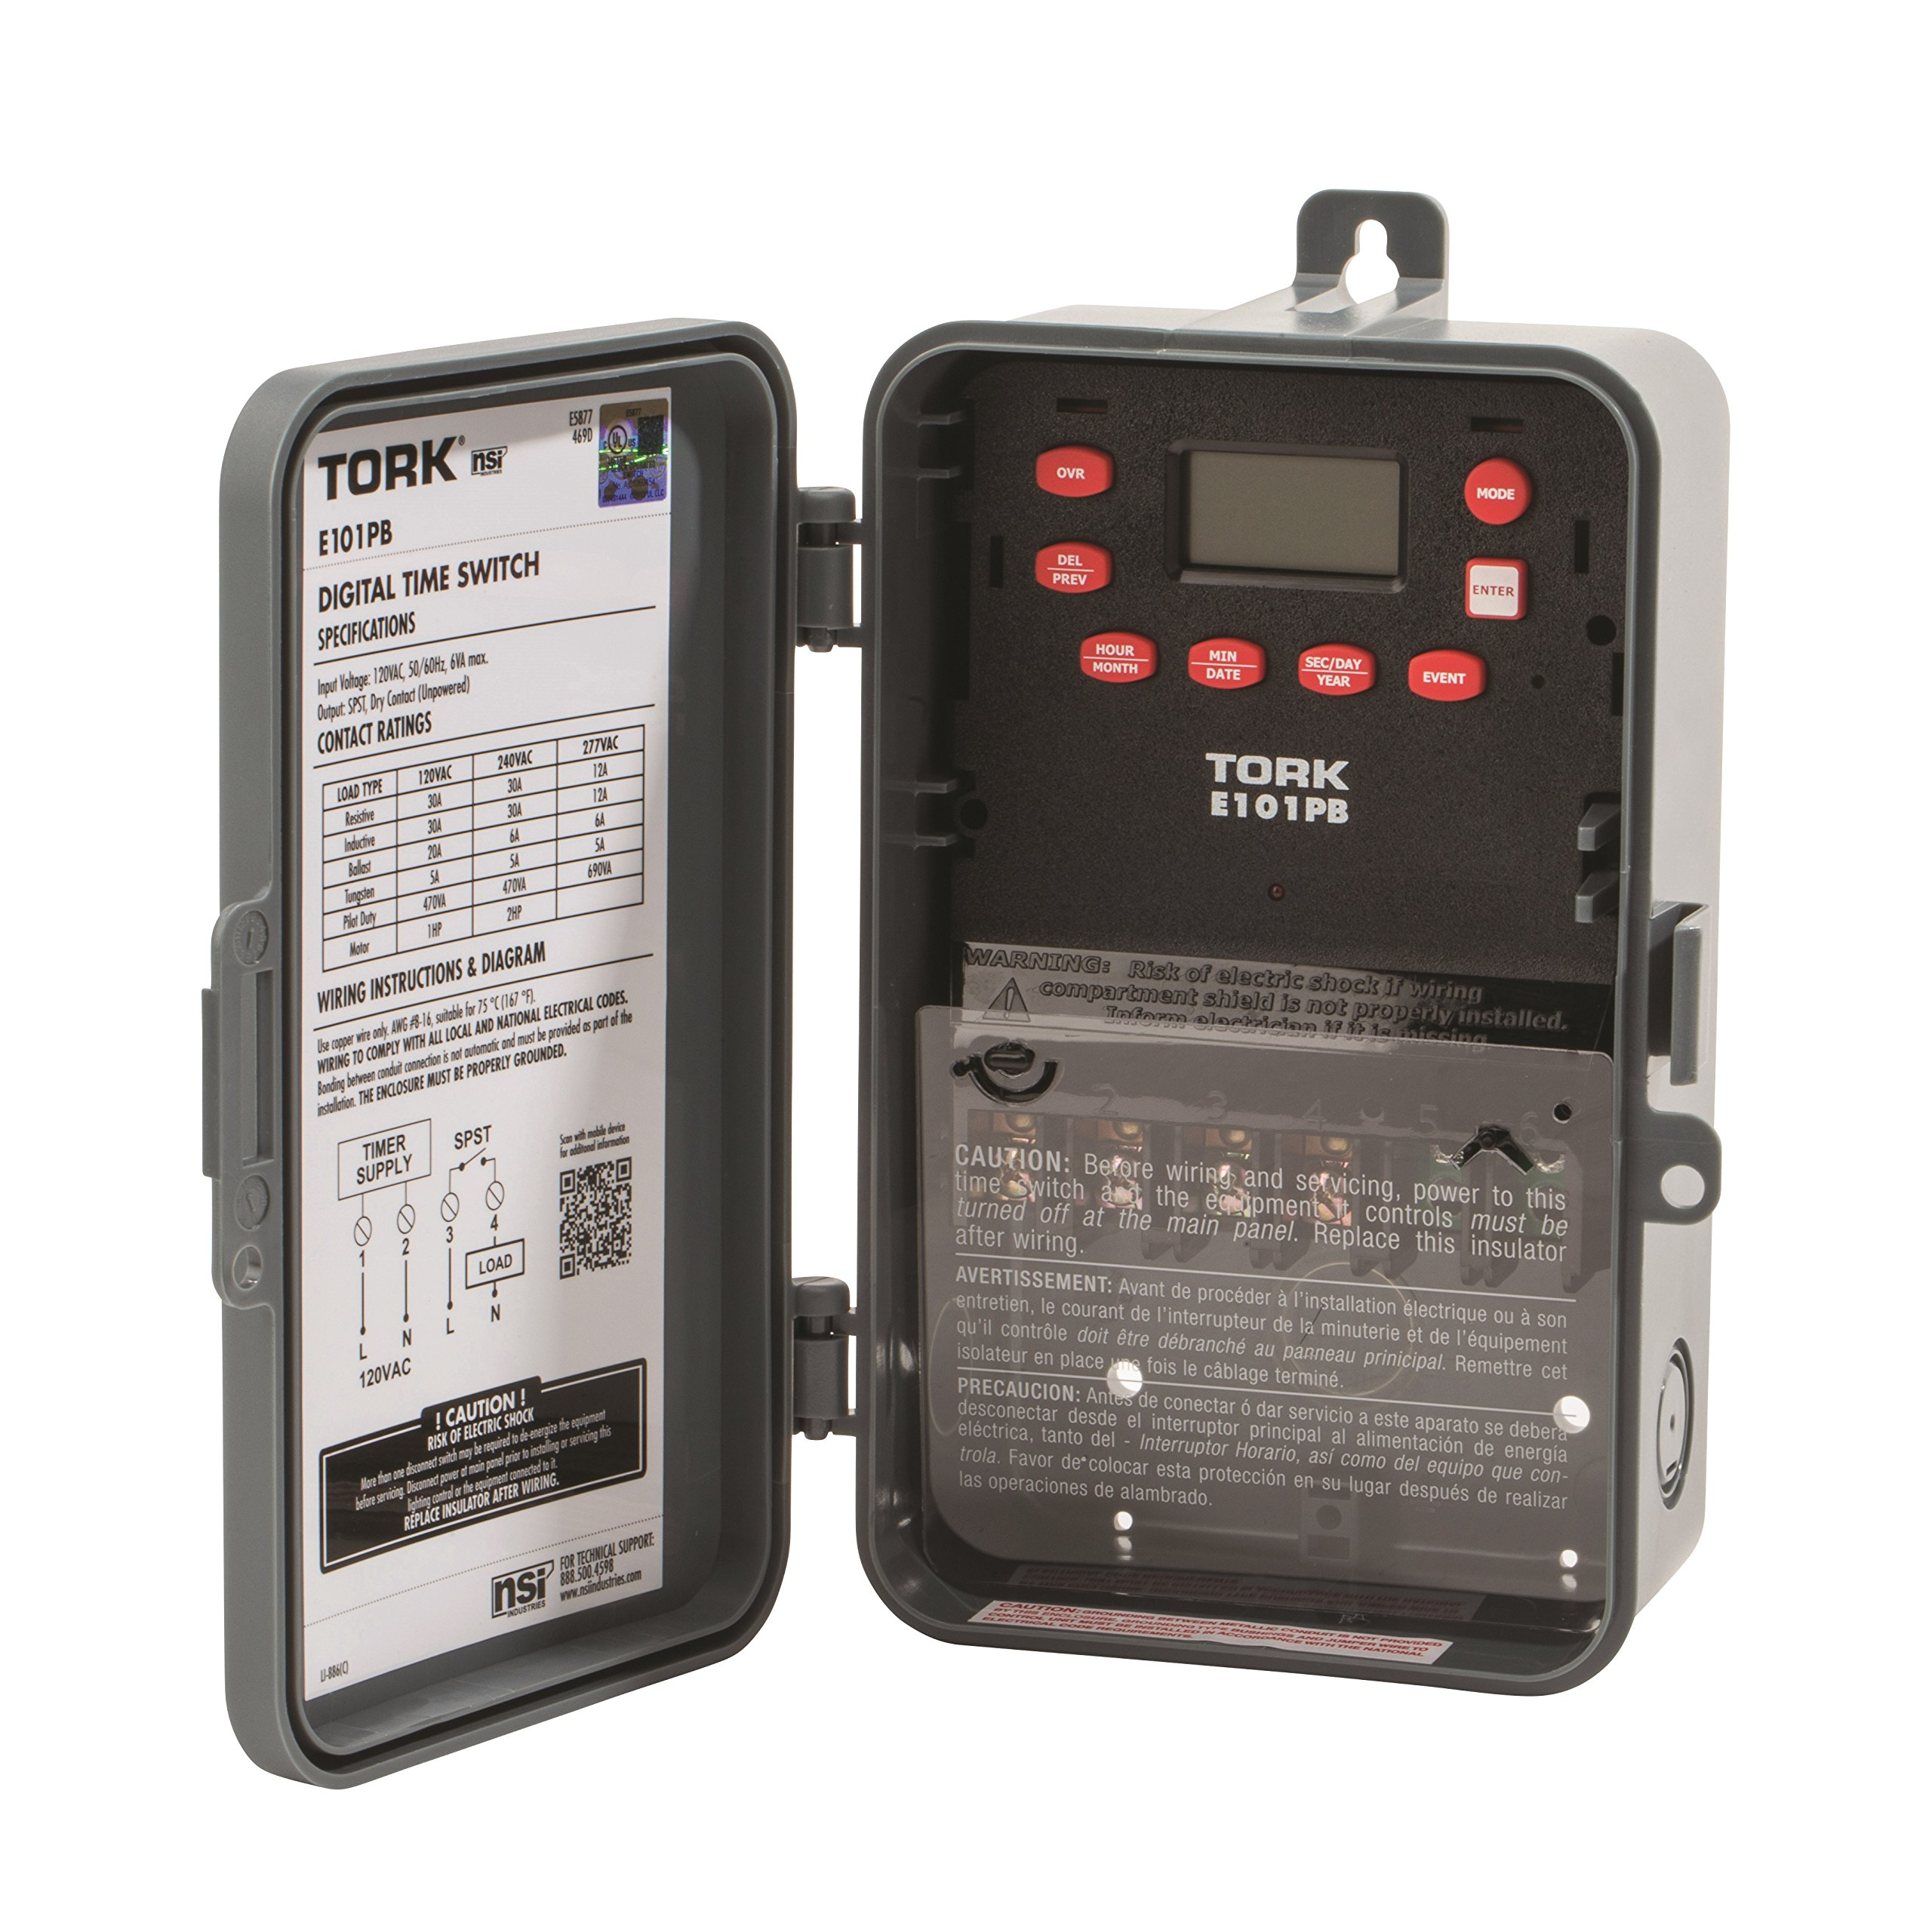 Multipurpose Control 24 Hour Time Switch, 120 VAC Input Supply, 1 Channel, SPST Output Dry Contact